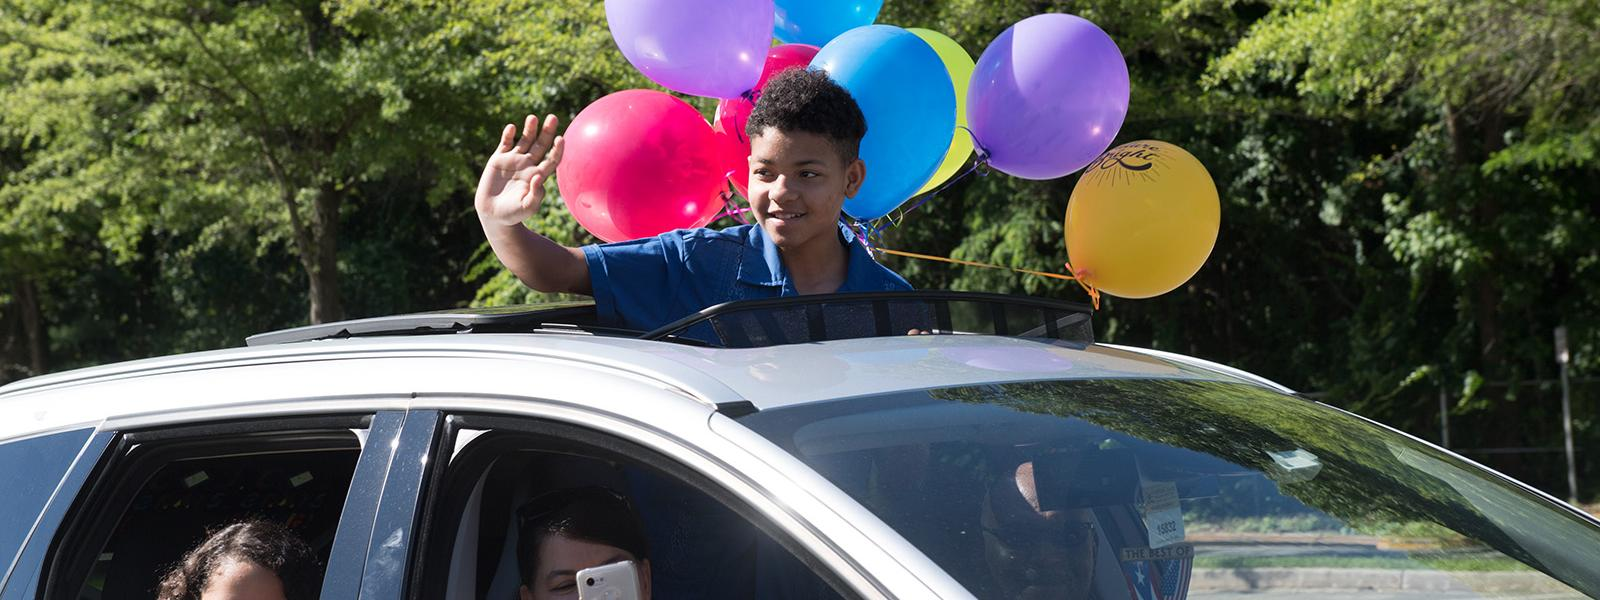 Willow Springs Elementary School students had an opportunity to say goodbye to their teachers during a drive-through parade at the end of the school year.